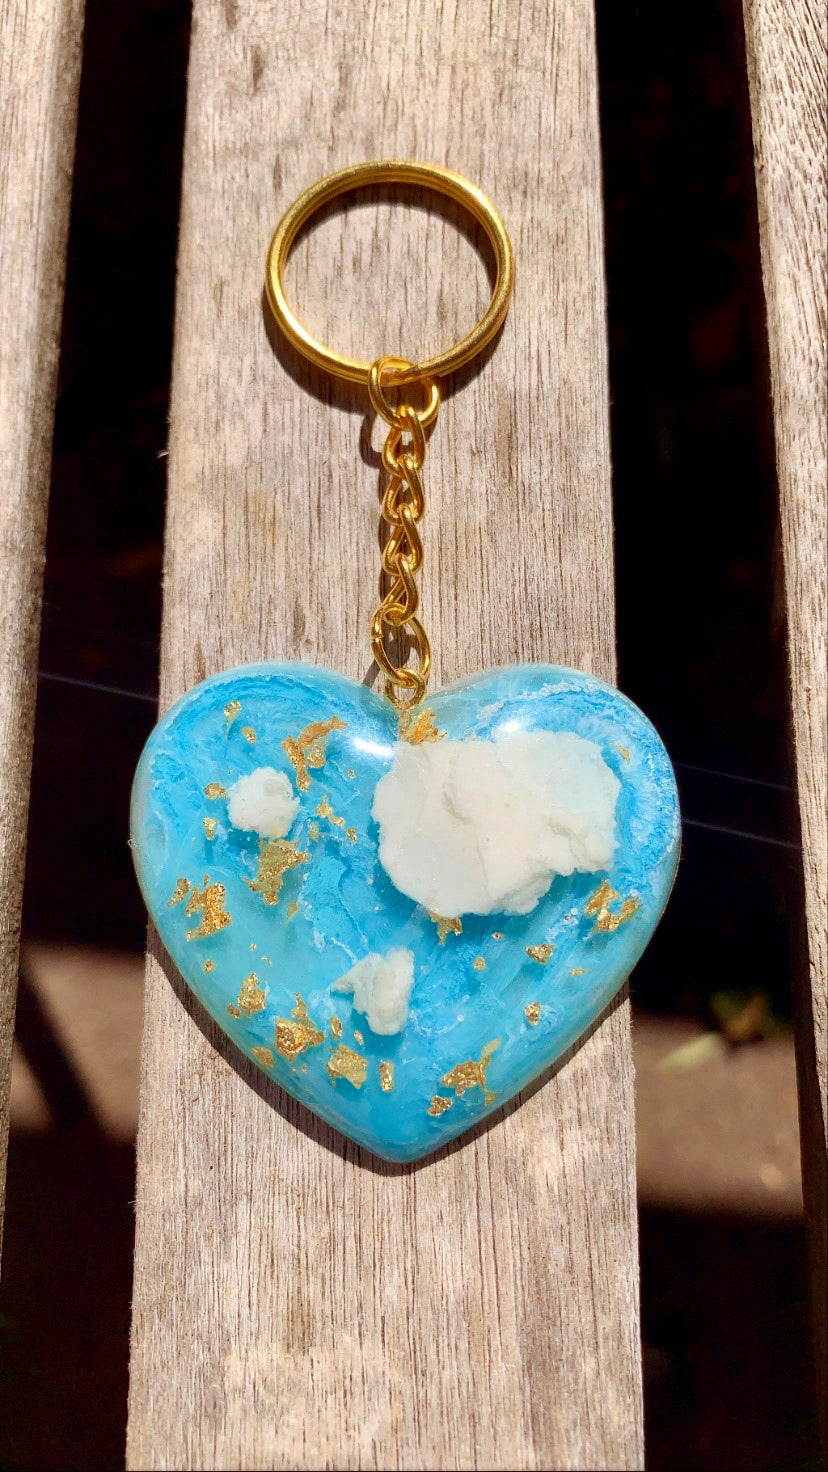 Blue Skies Heart Keychain #2 - Pressbe Workshop